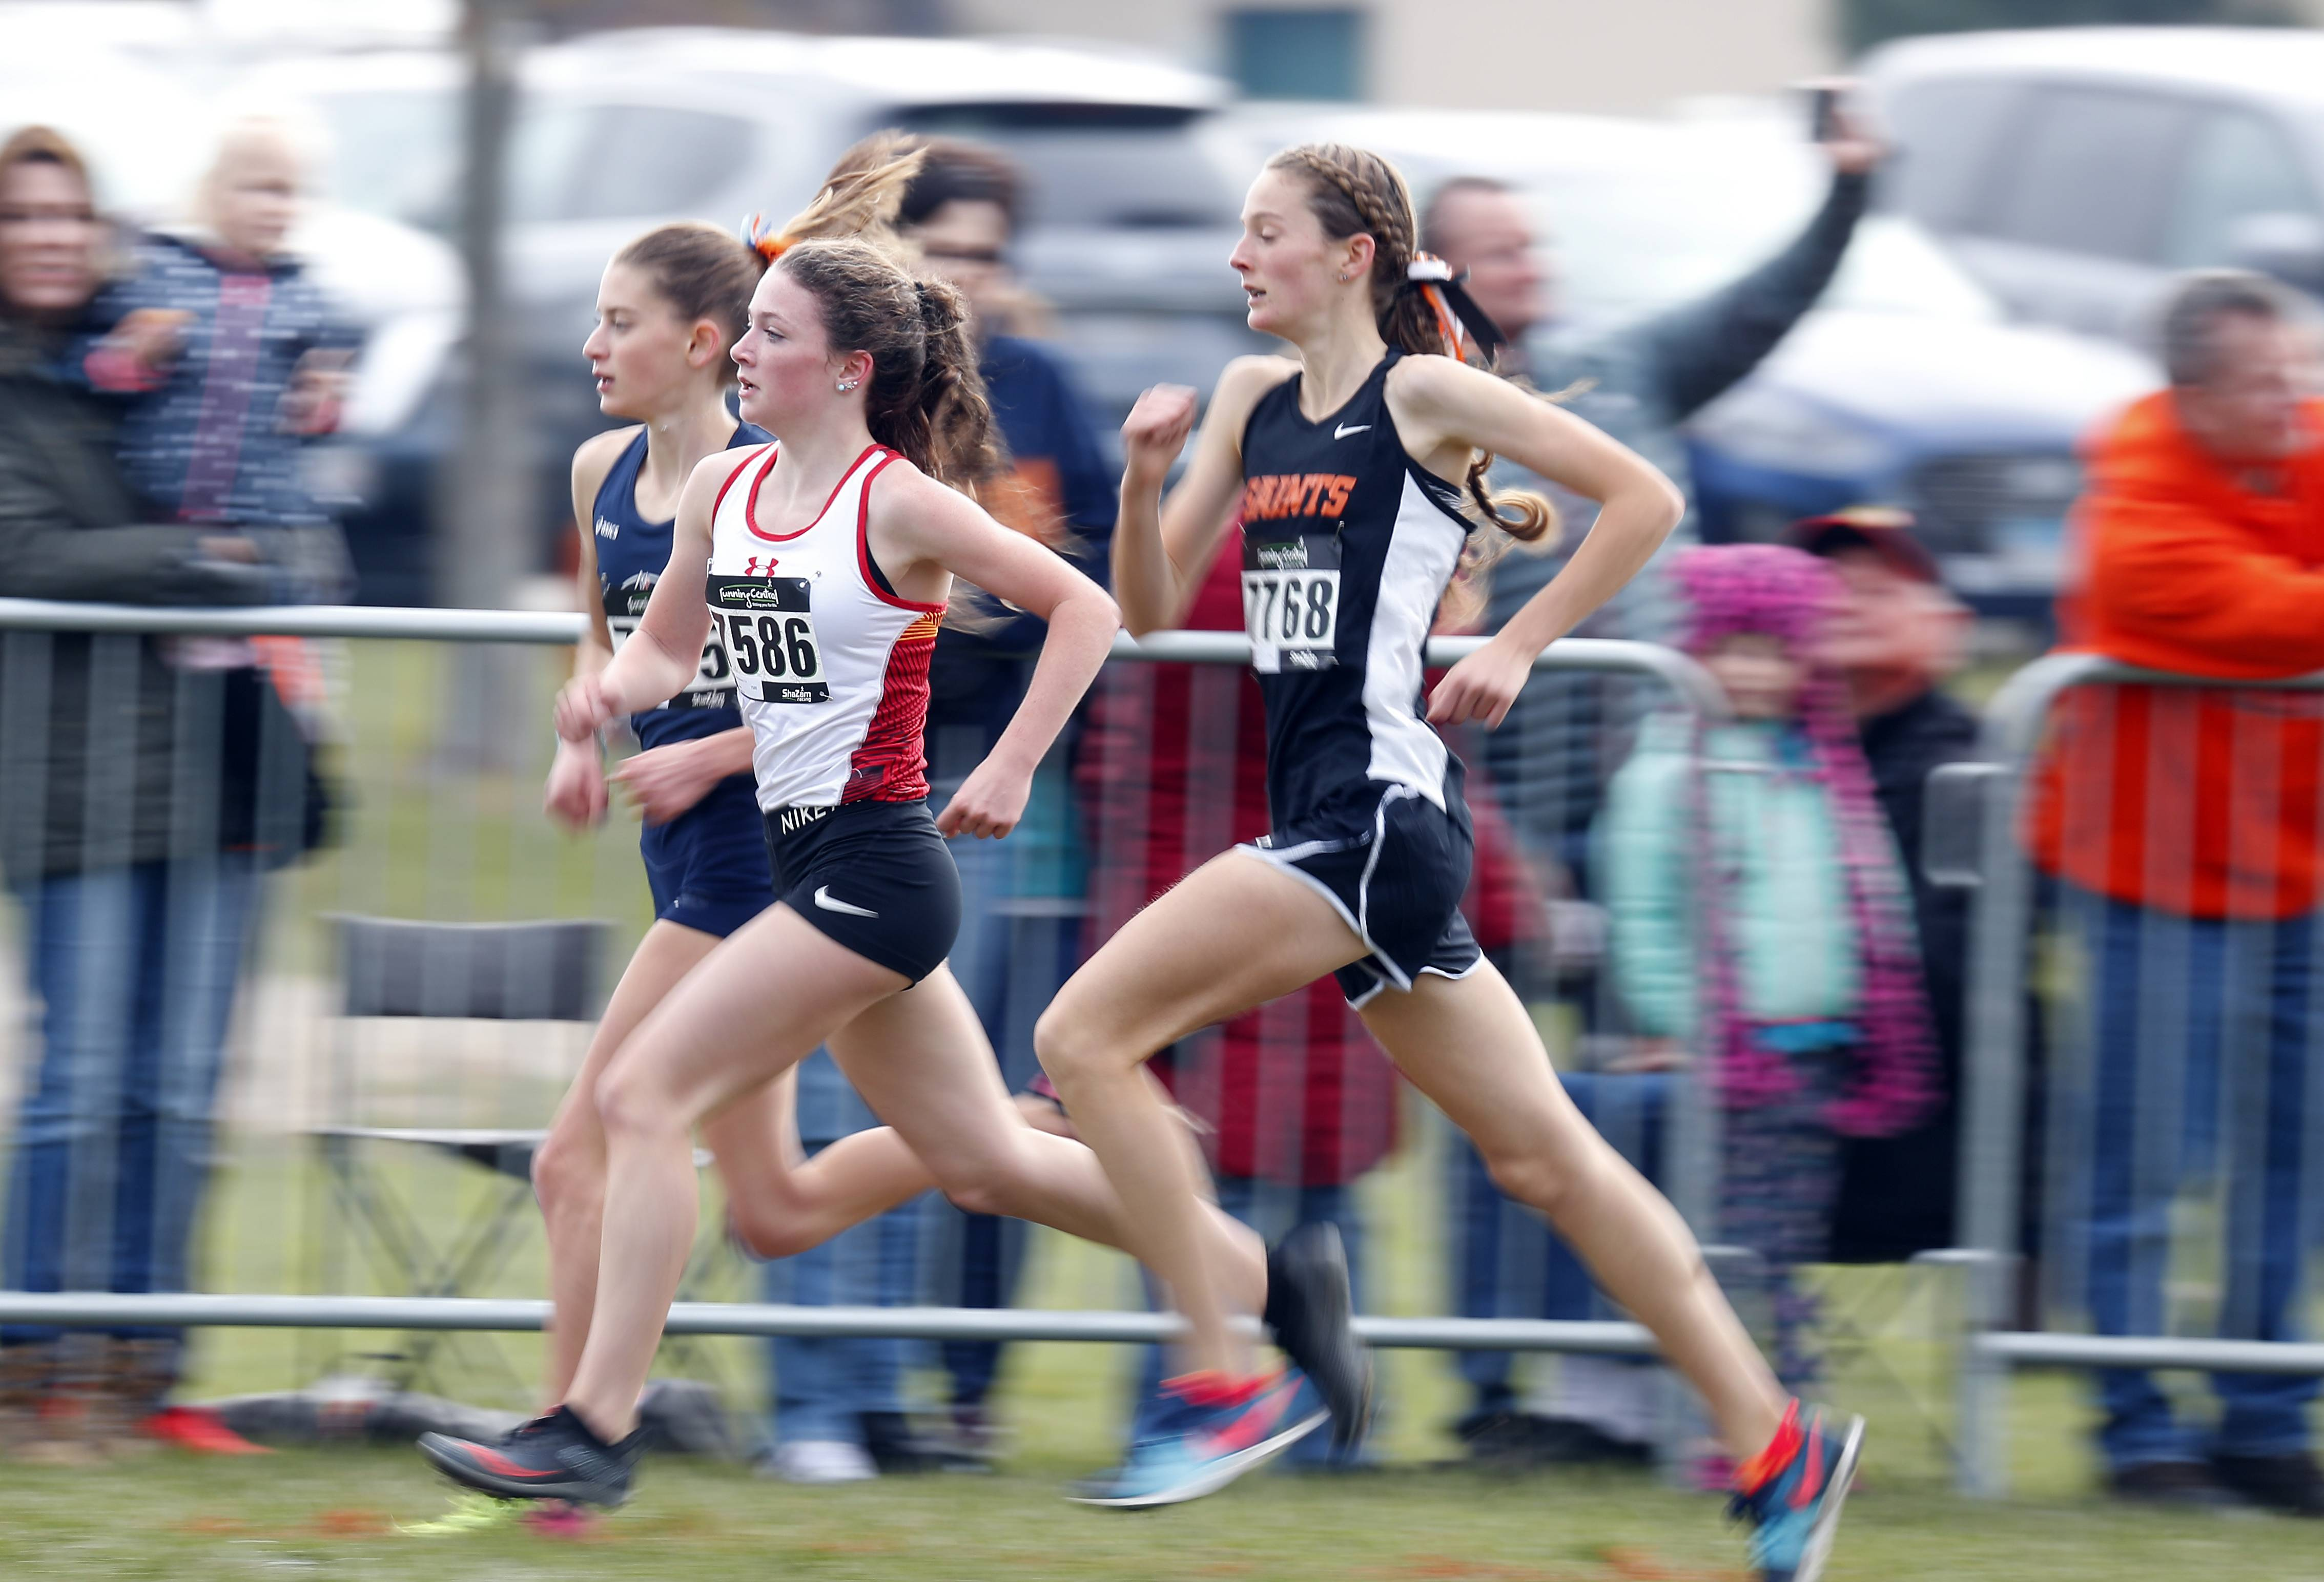 Katrina Schlenker of Batavia Saturday during the Waubonsie Valley cross country sectional in Aurora.